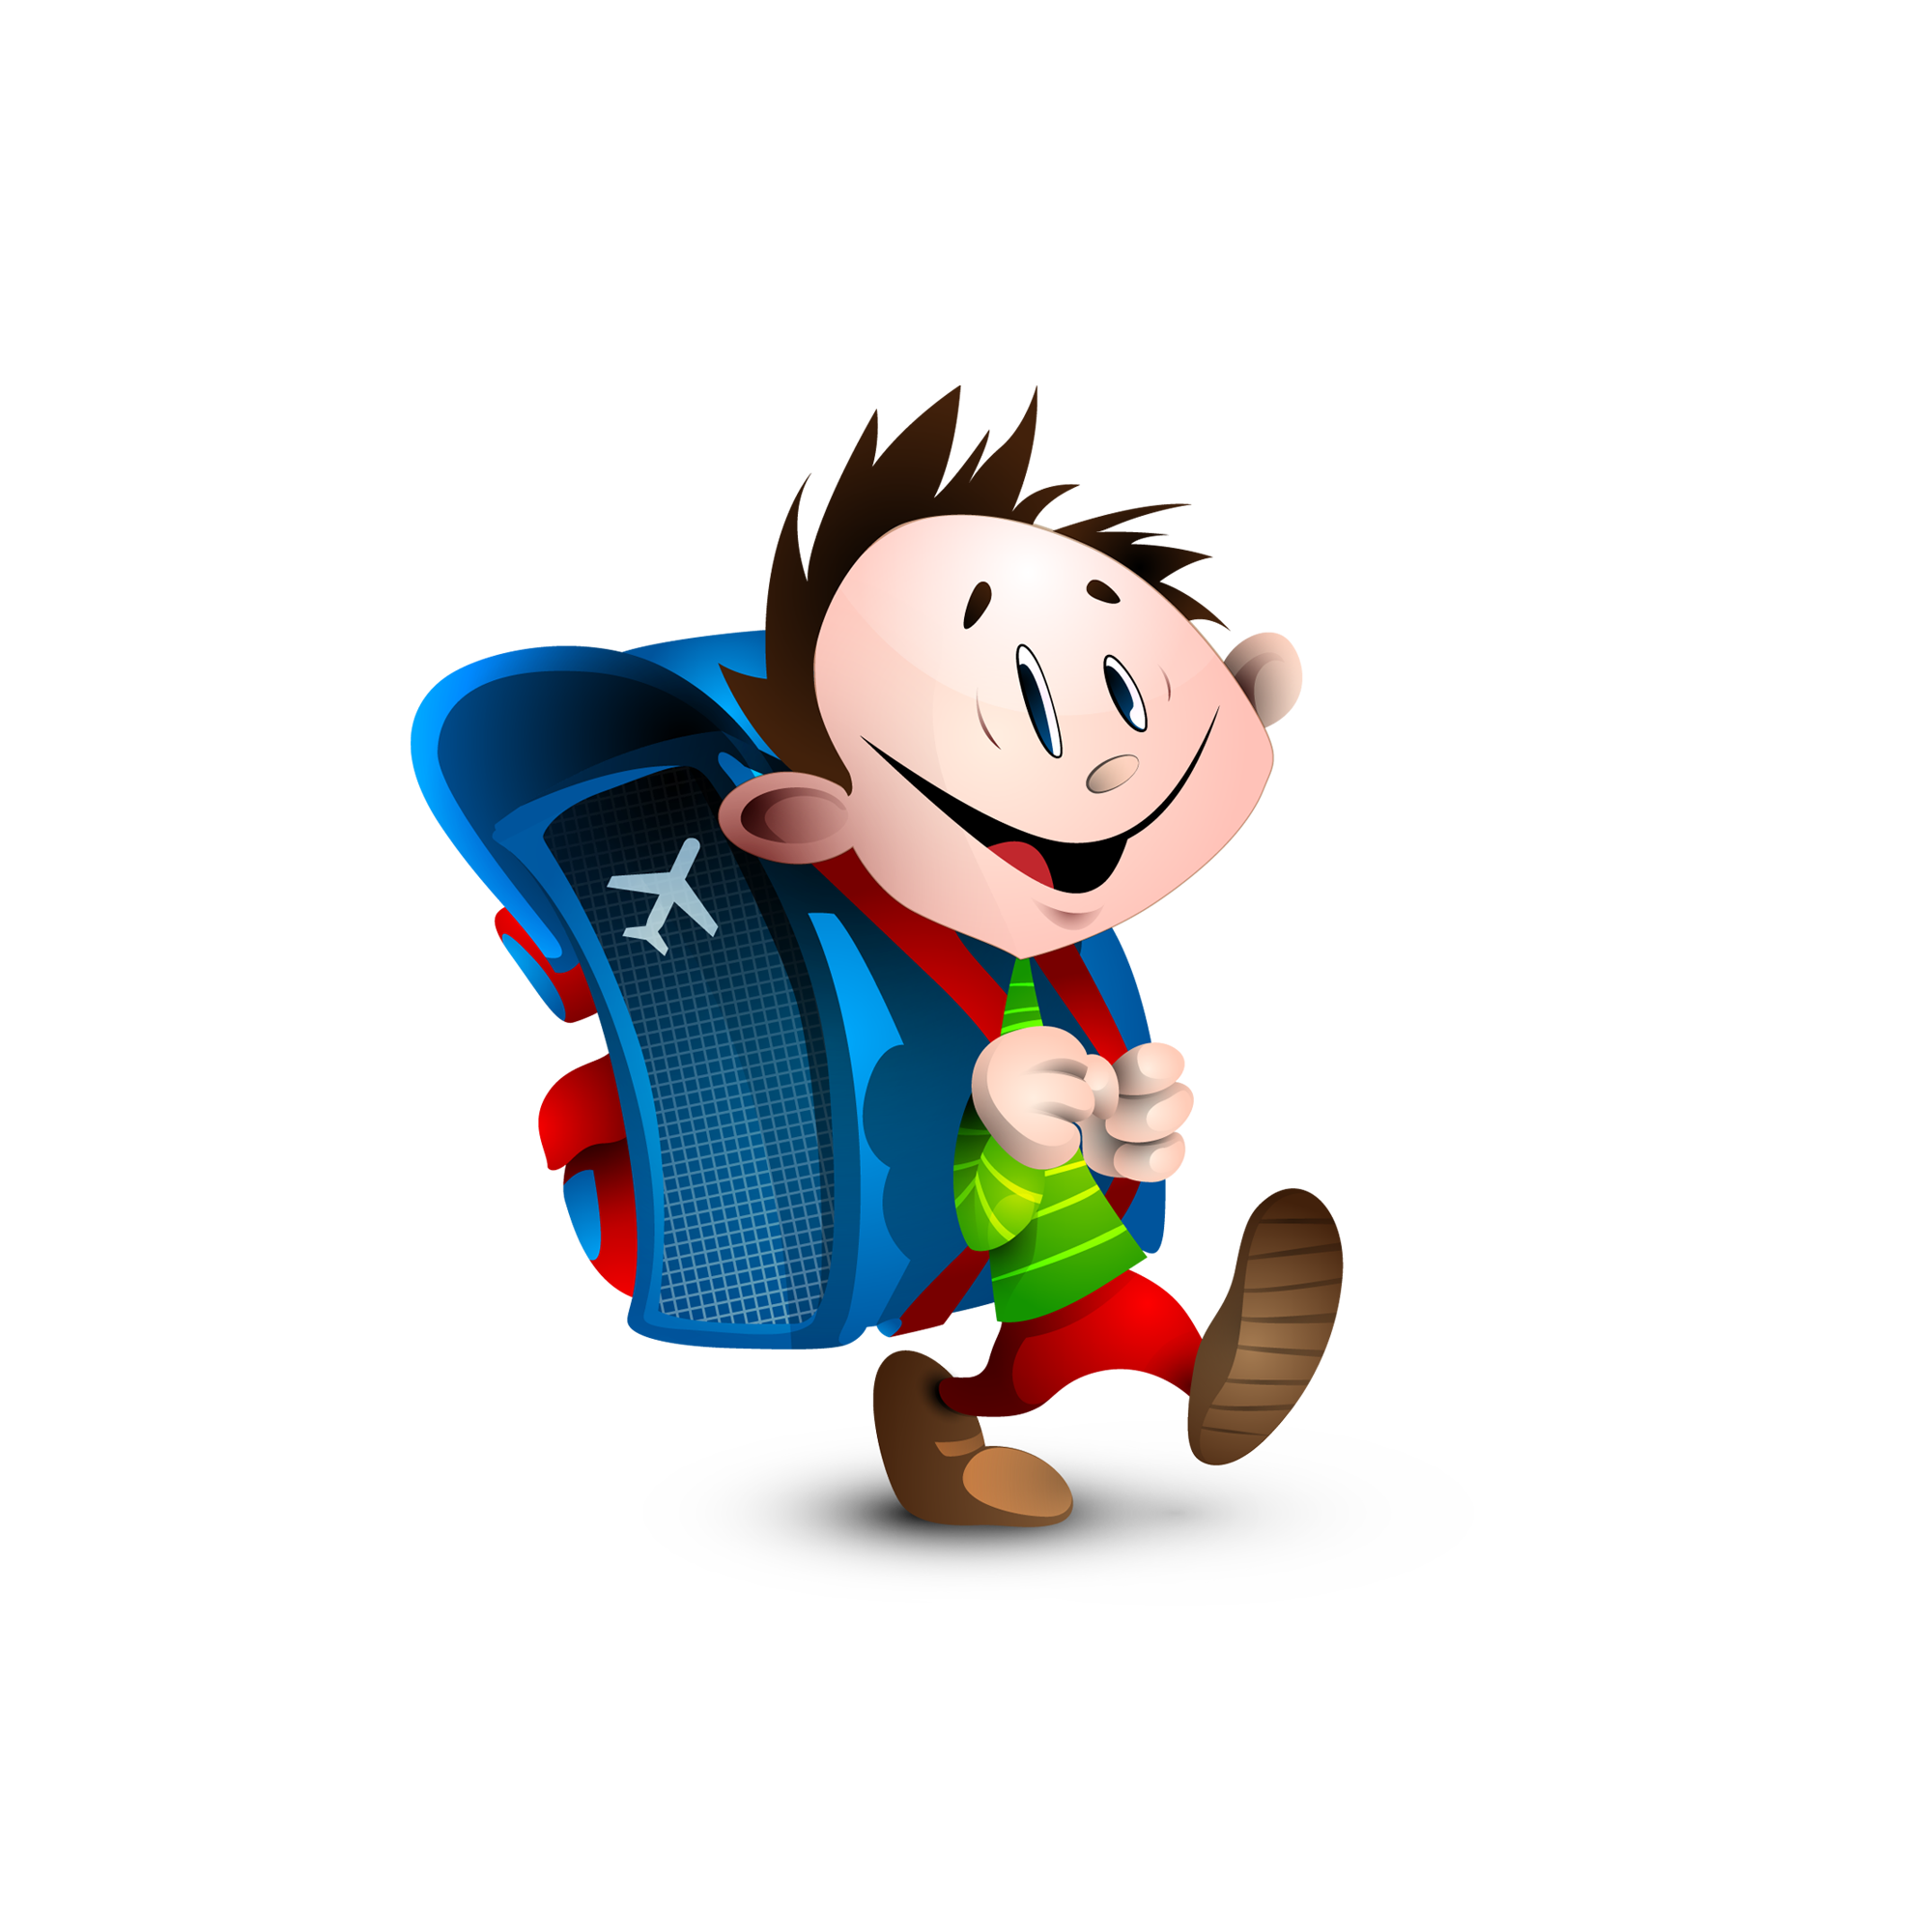 Children walking to school clipart svg royalty free stock Animation Child School Clip art - Cartoon boy walking to school ... svg royalty free stock